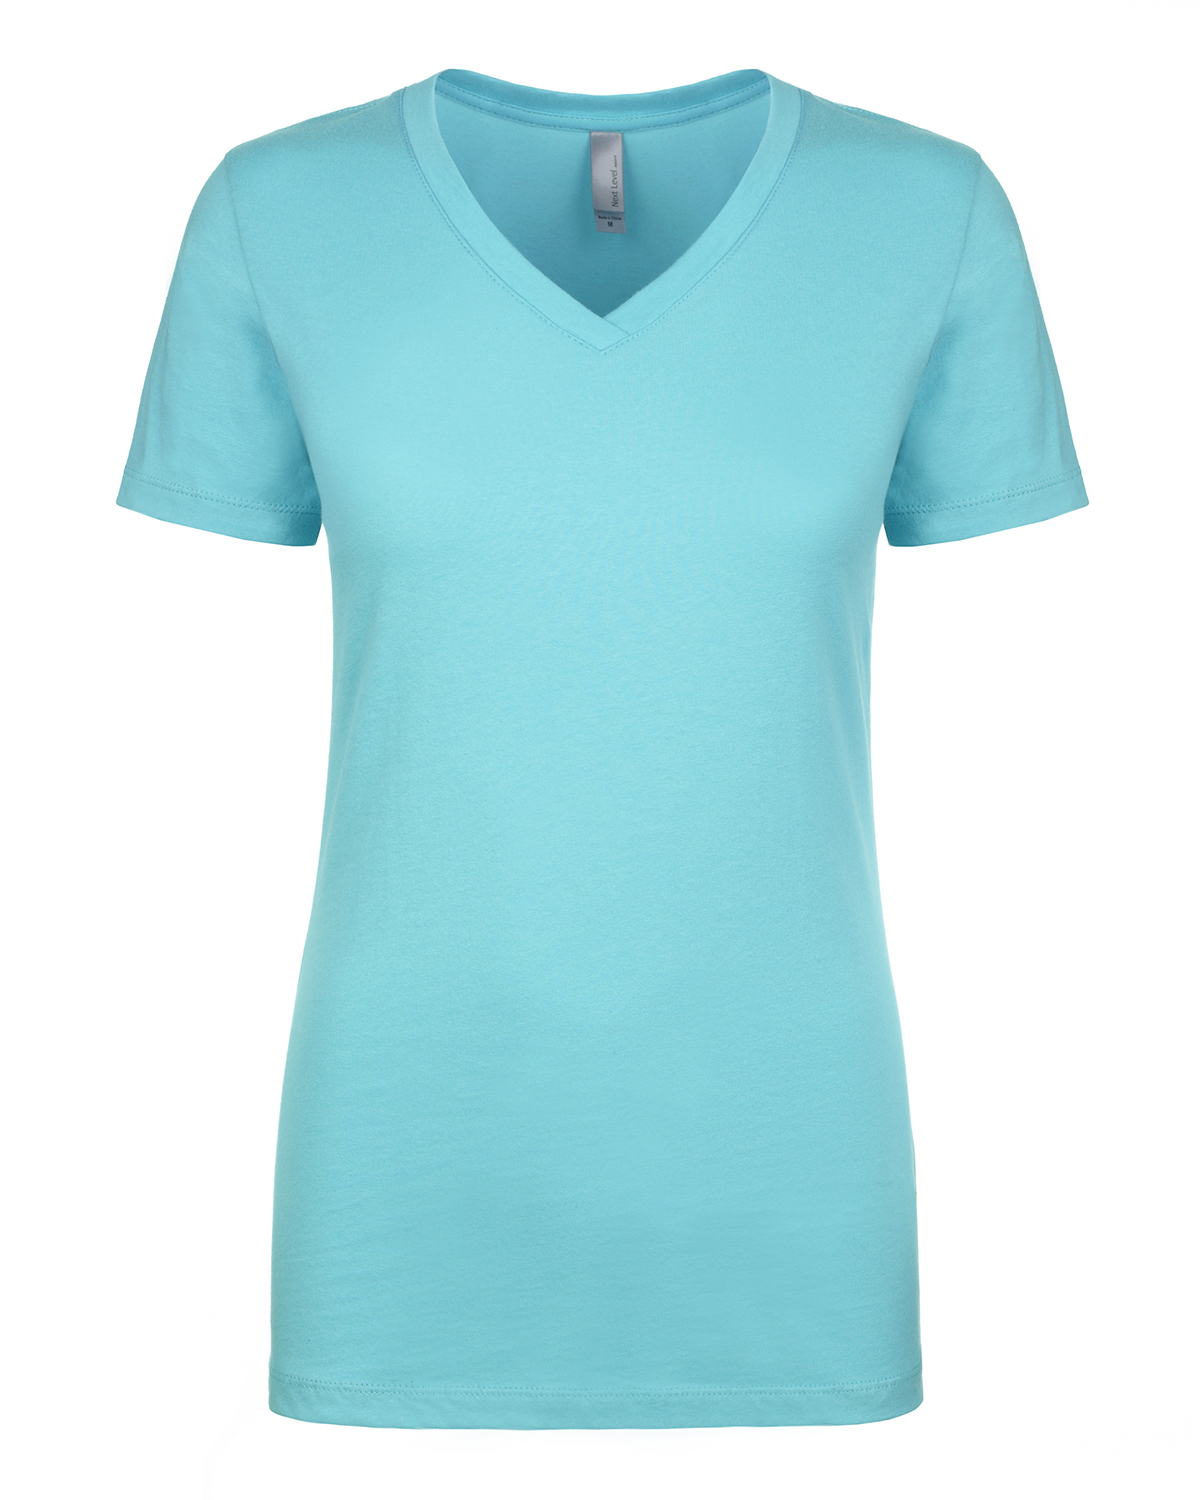 775be4c23fd Next Level Apparel N1540 - Ladies' Ideal V-Neck Tee  2.74 - Women's ...